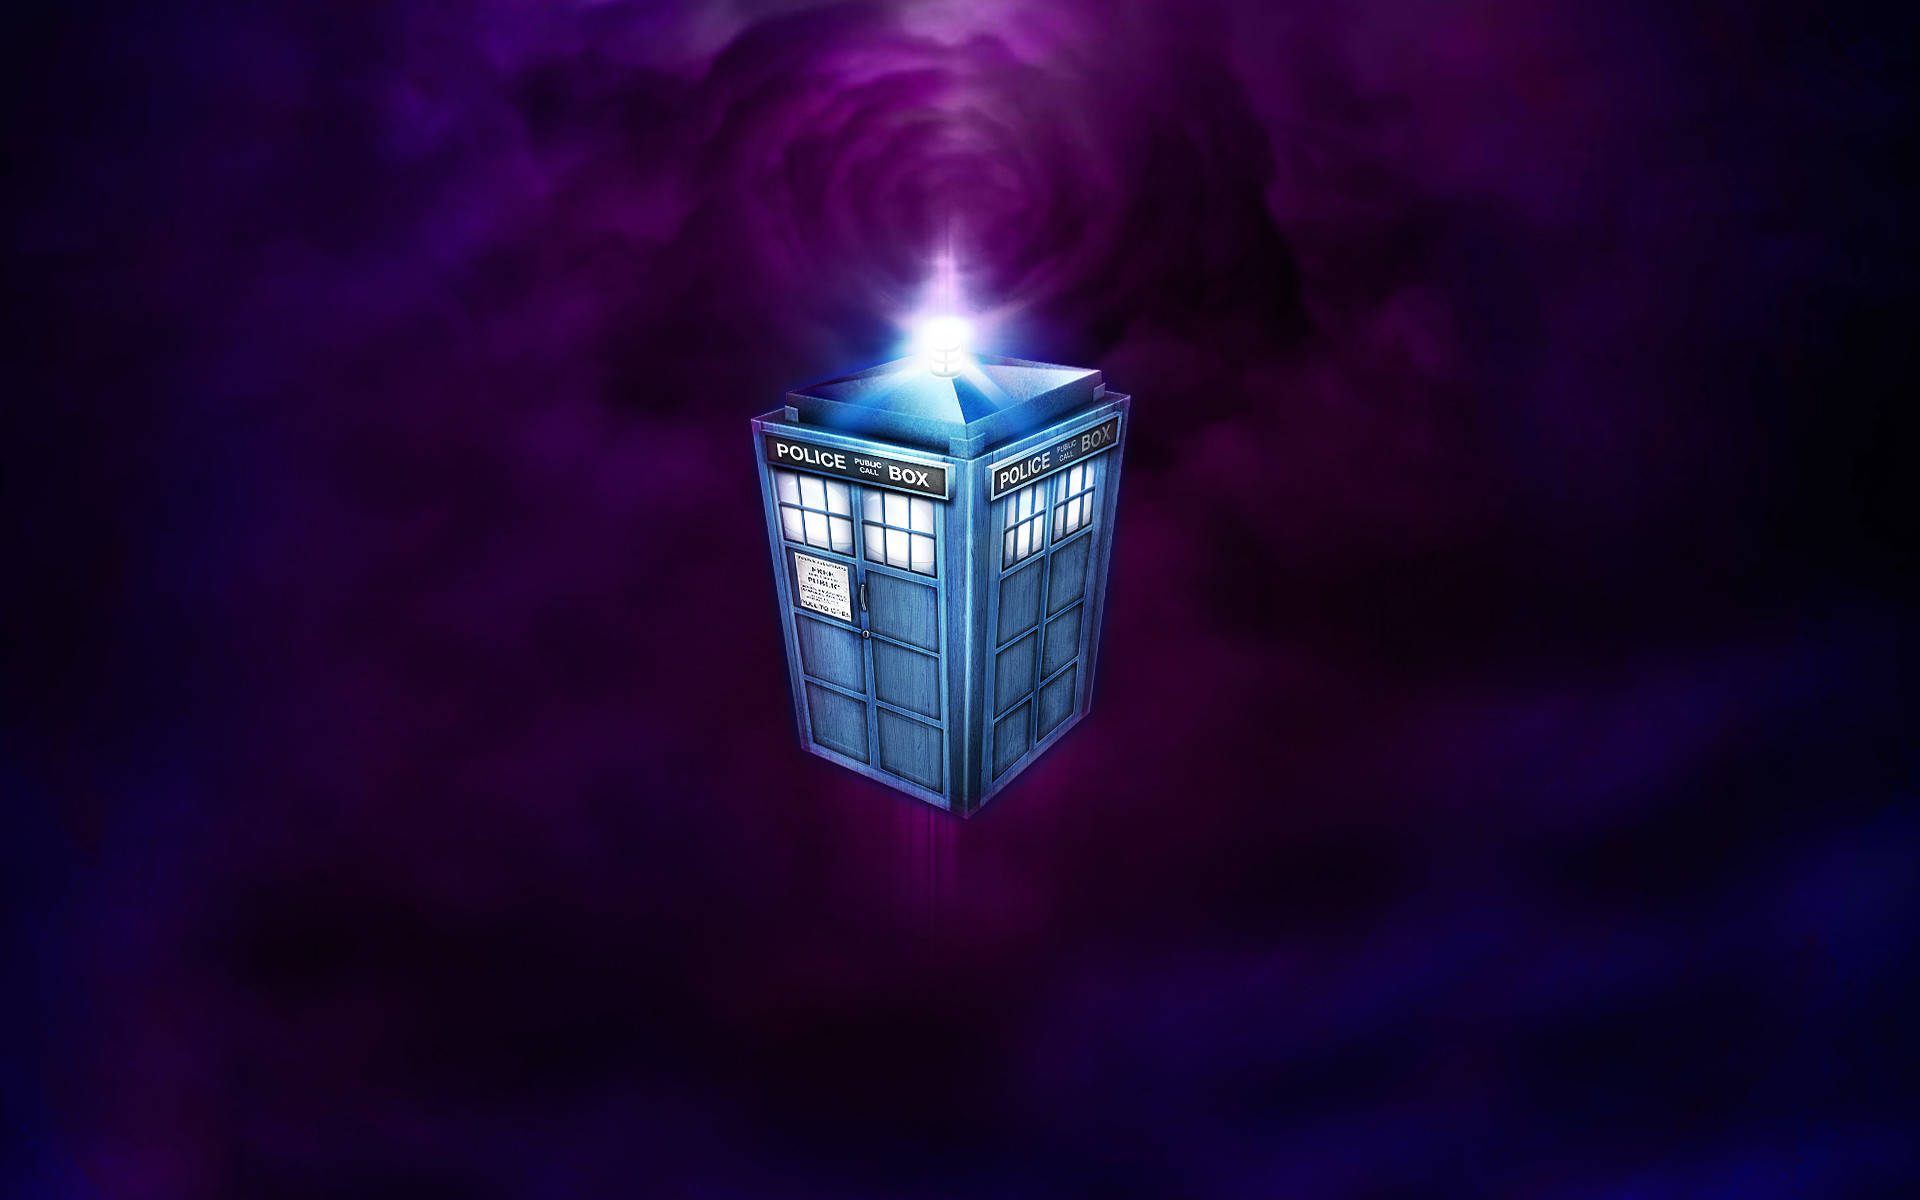 Michael Flarup Doctor Who Tardis Wallpaper.png over 2 years ago 2866 .